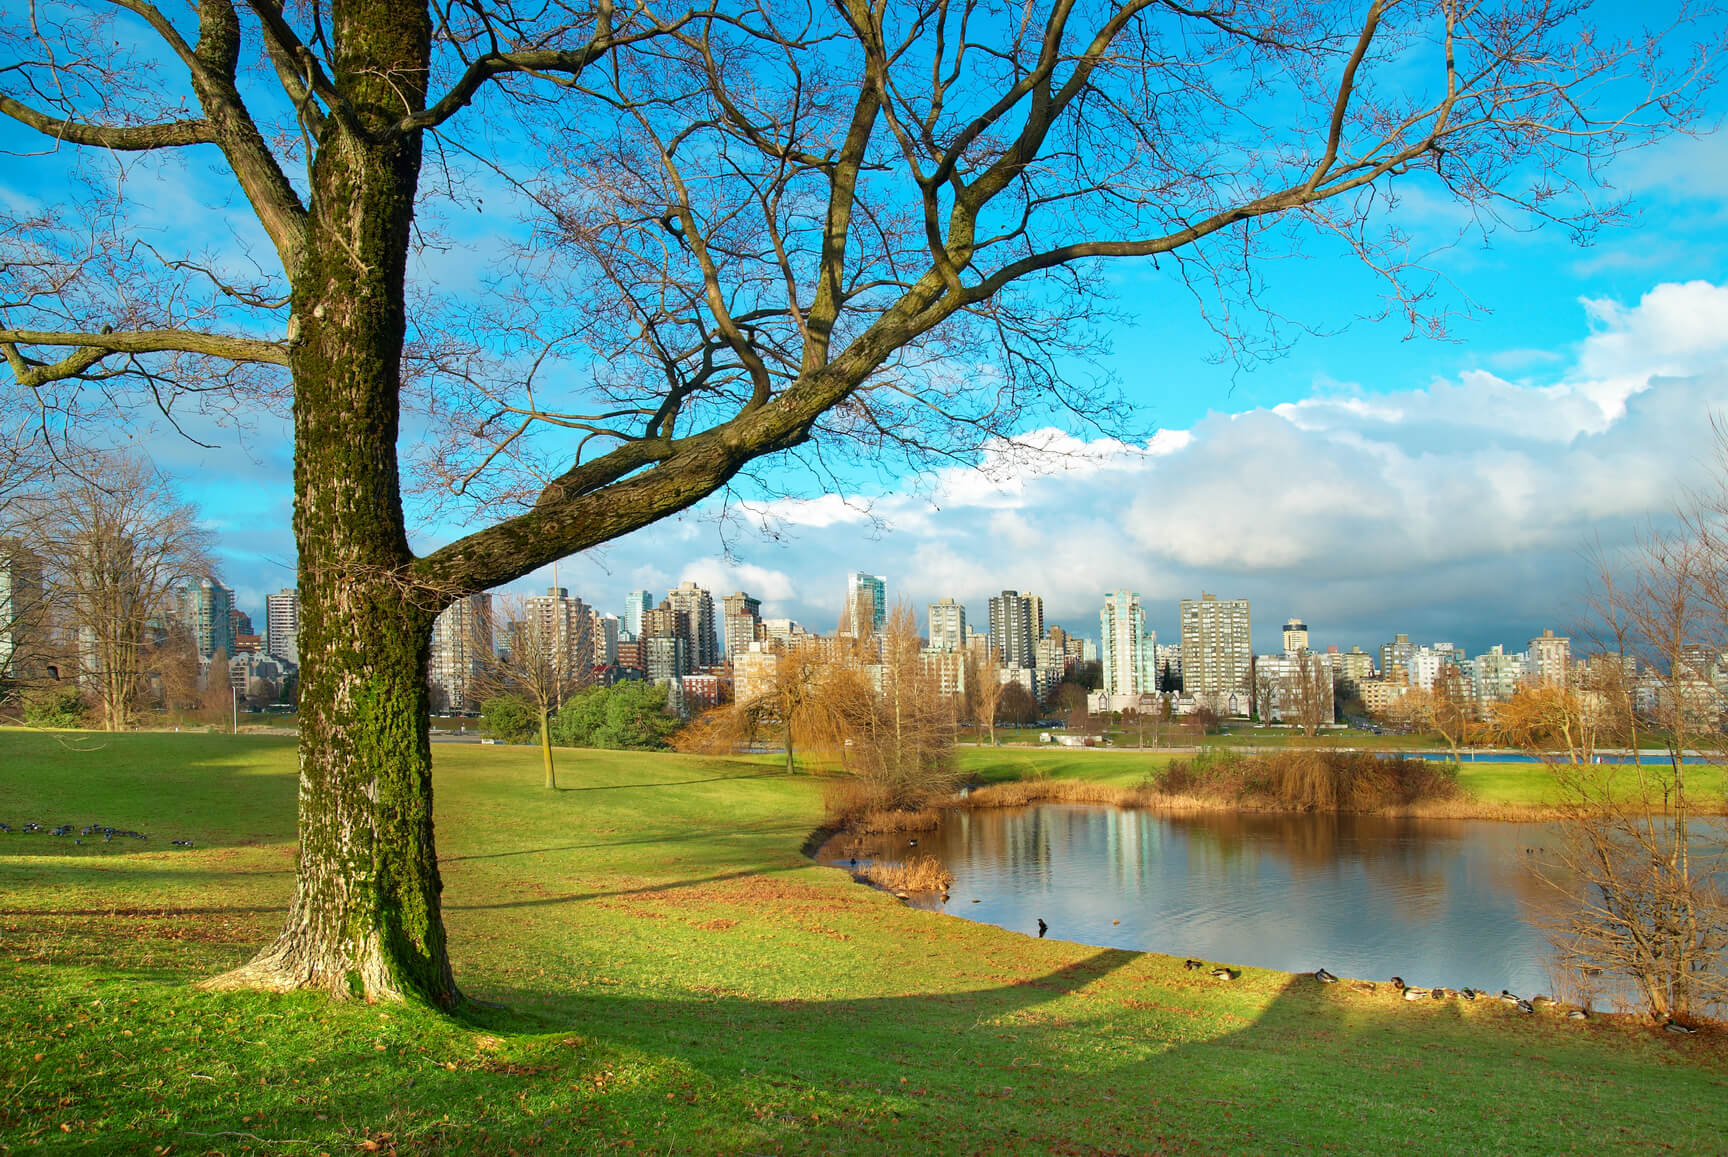 Non-stop from Chicago to Vancouver, Canada for only $236 roundtrip